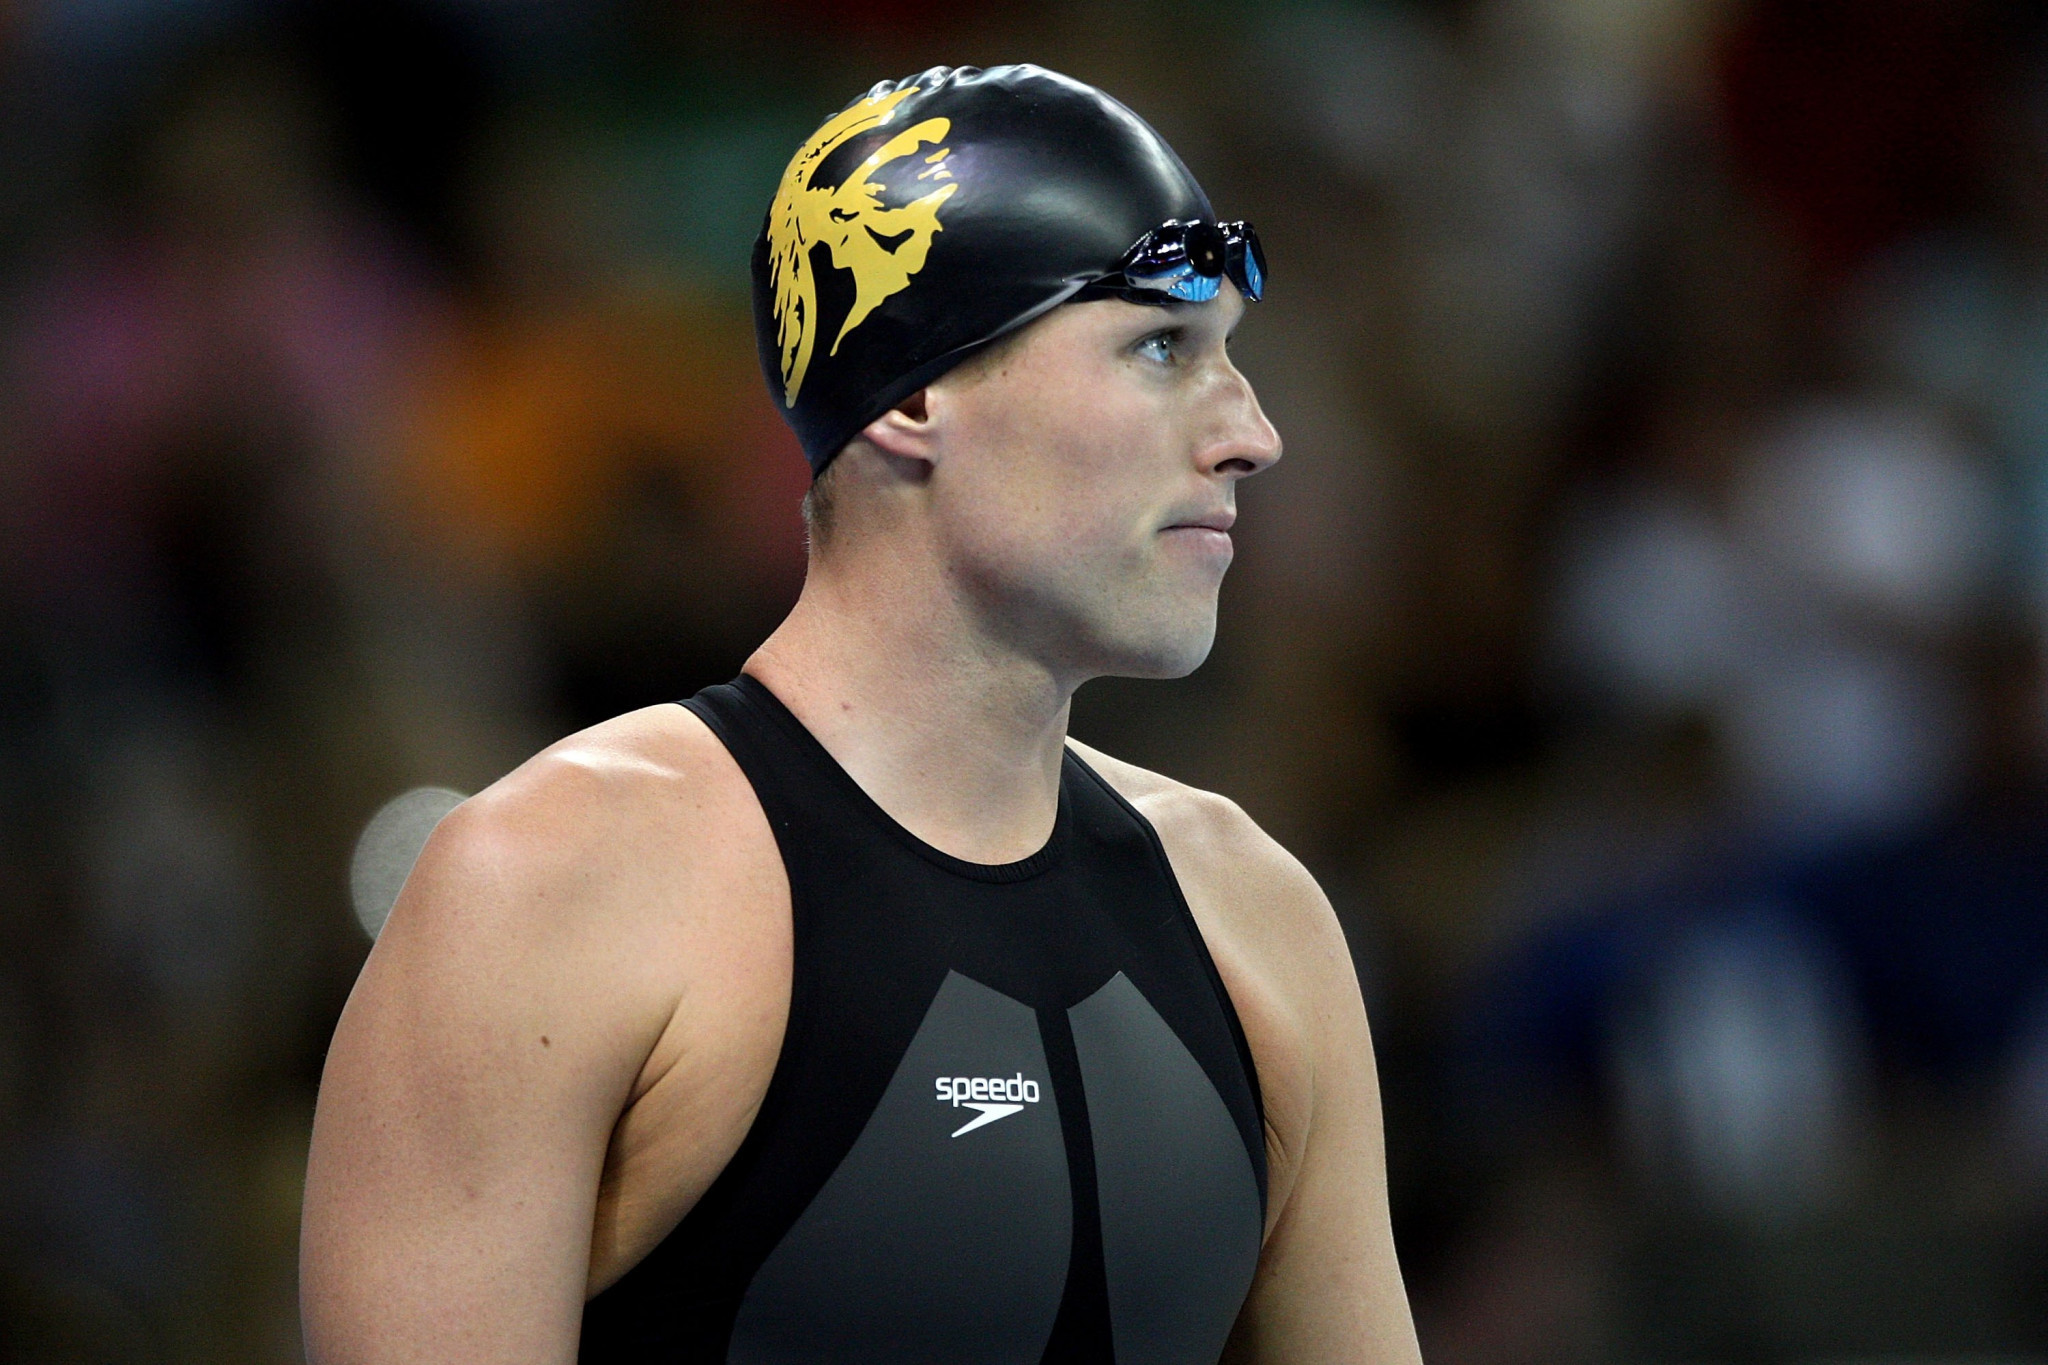 Klete Keller won five Olympic medals between 2000 and 2008 ©Getty Images